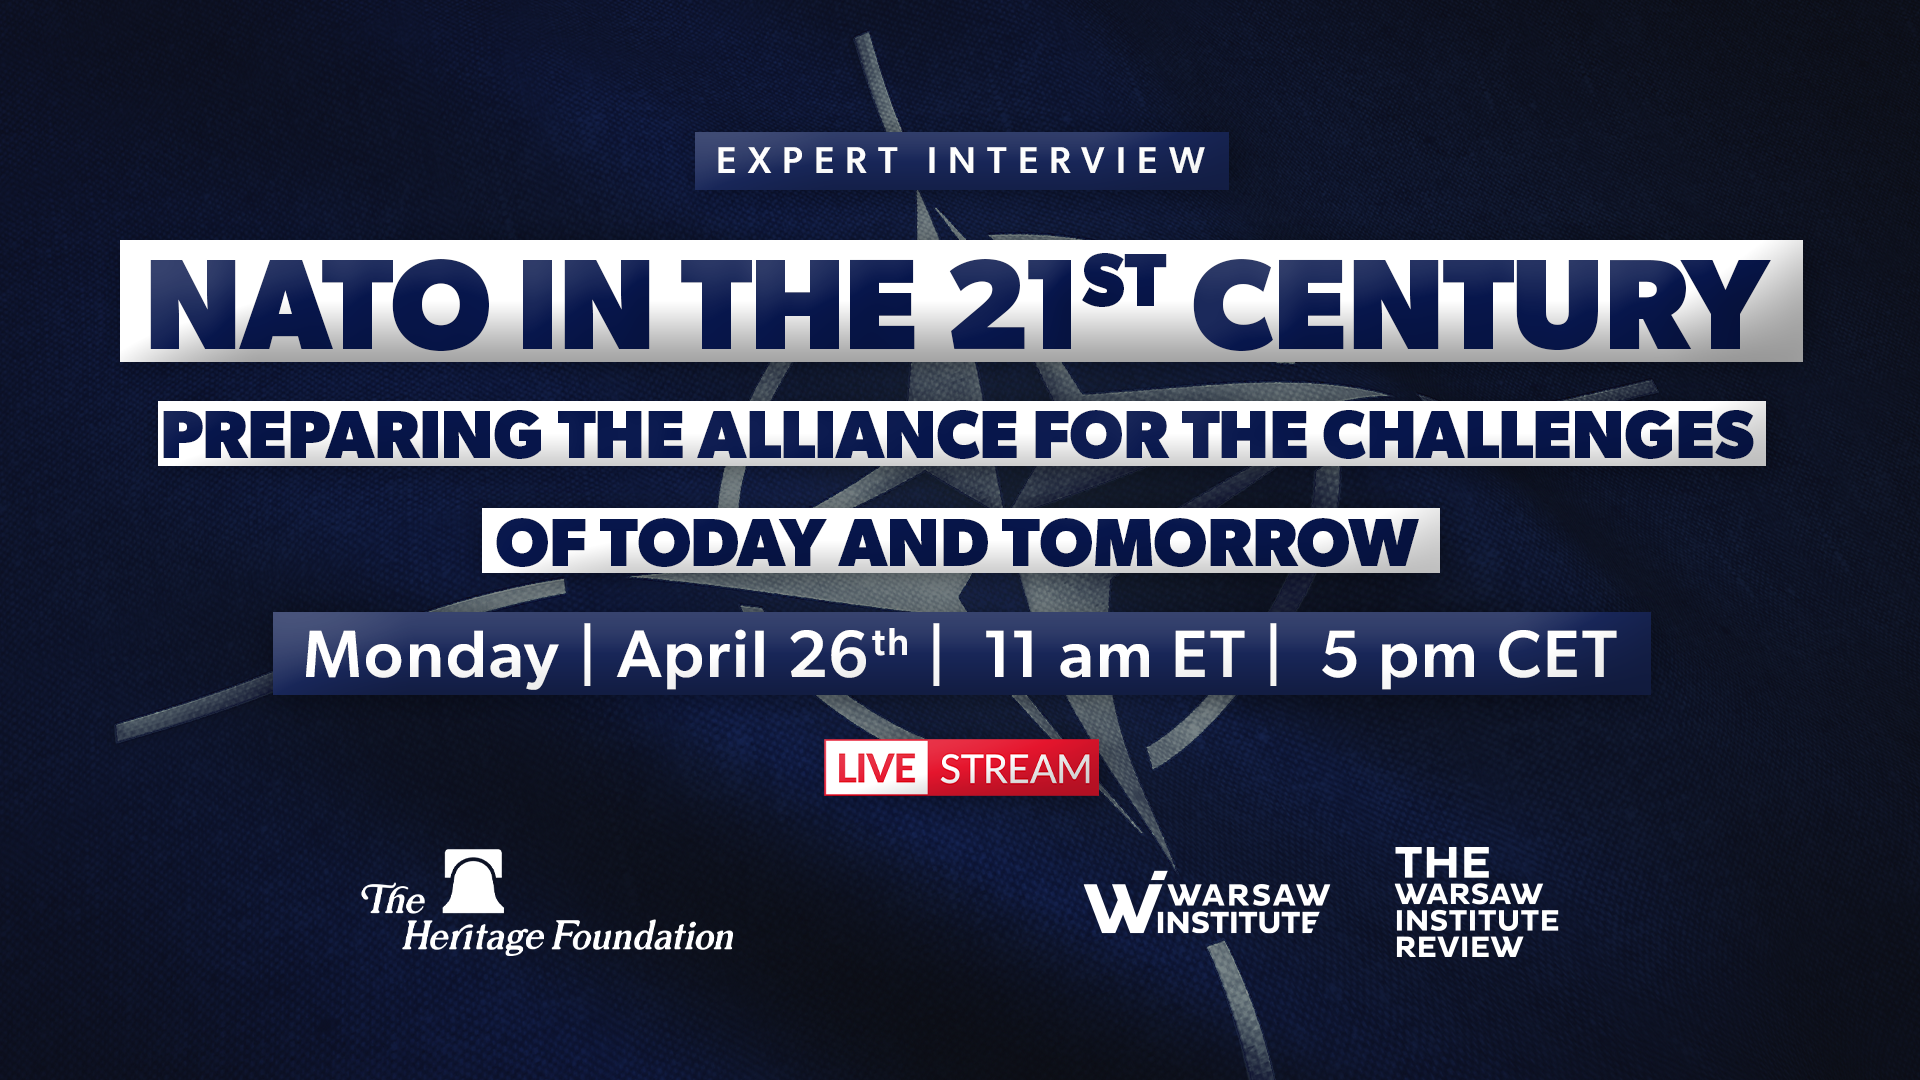 NATO in the 21st Century: Preparing the Alliance for the Challenges of Today and Tomorrow